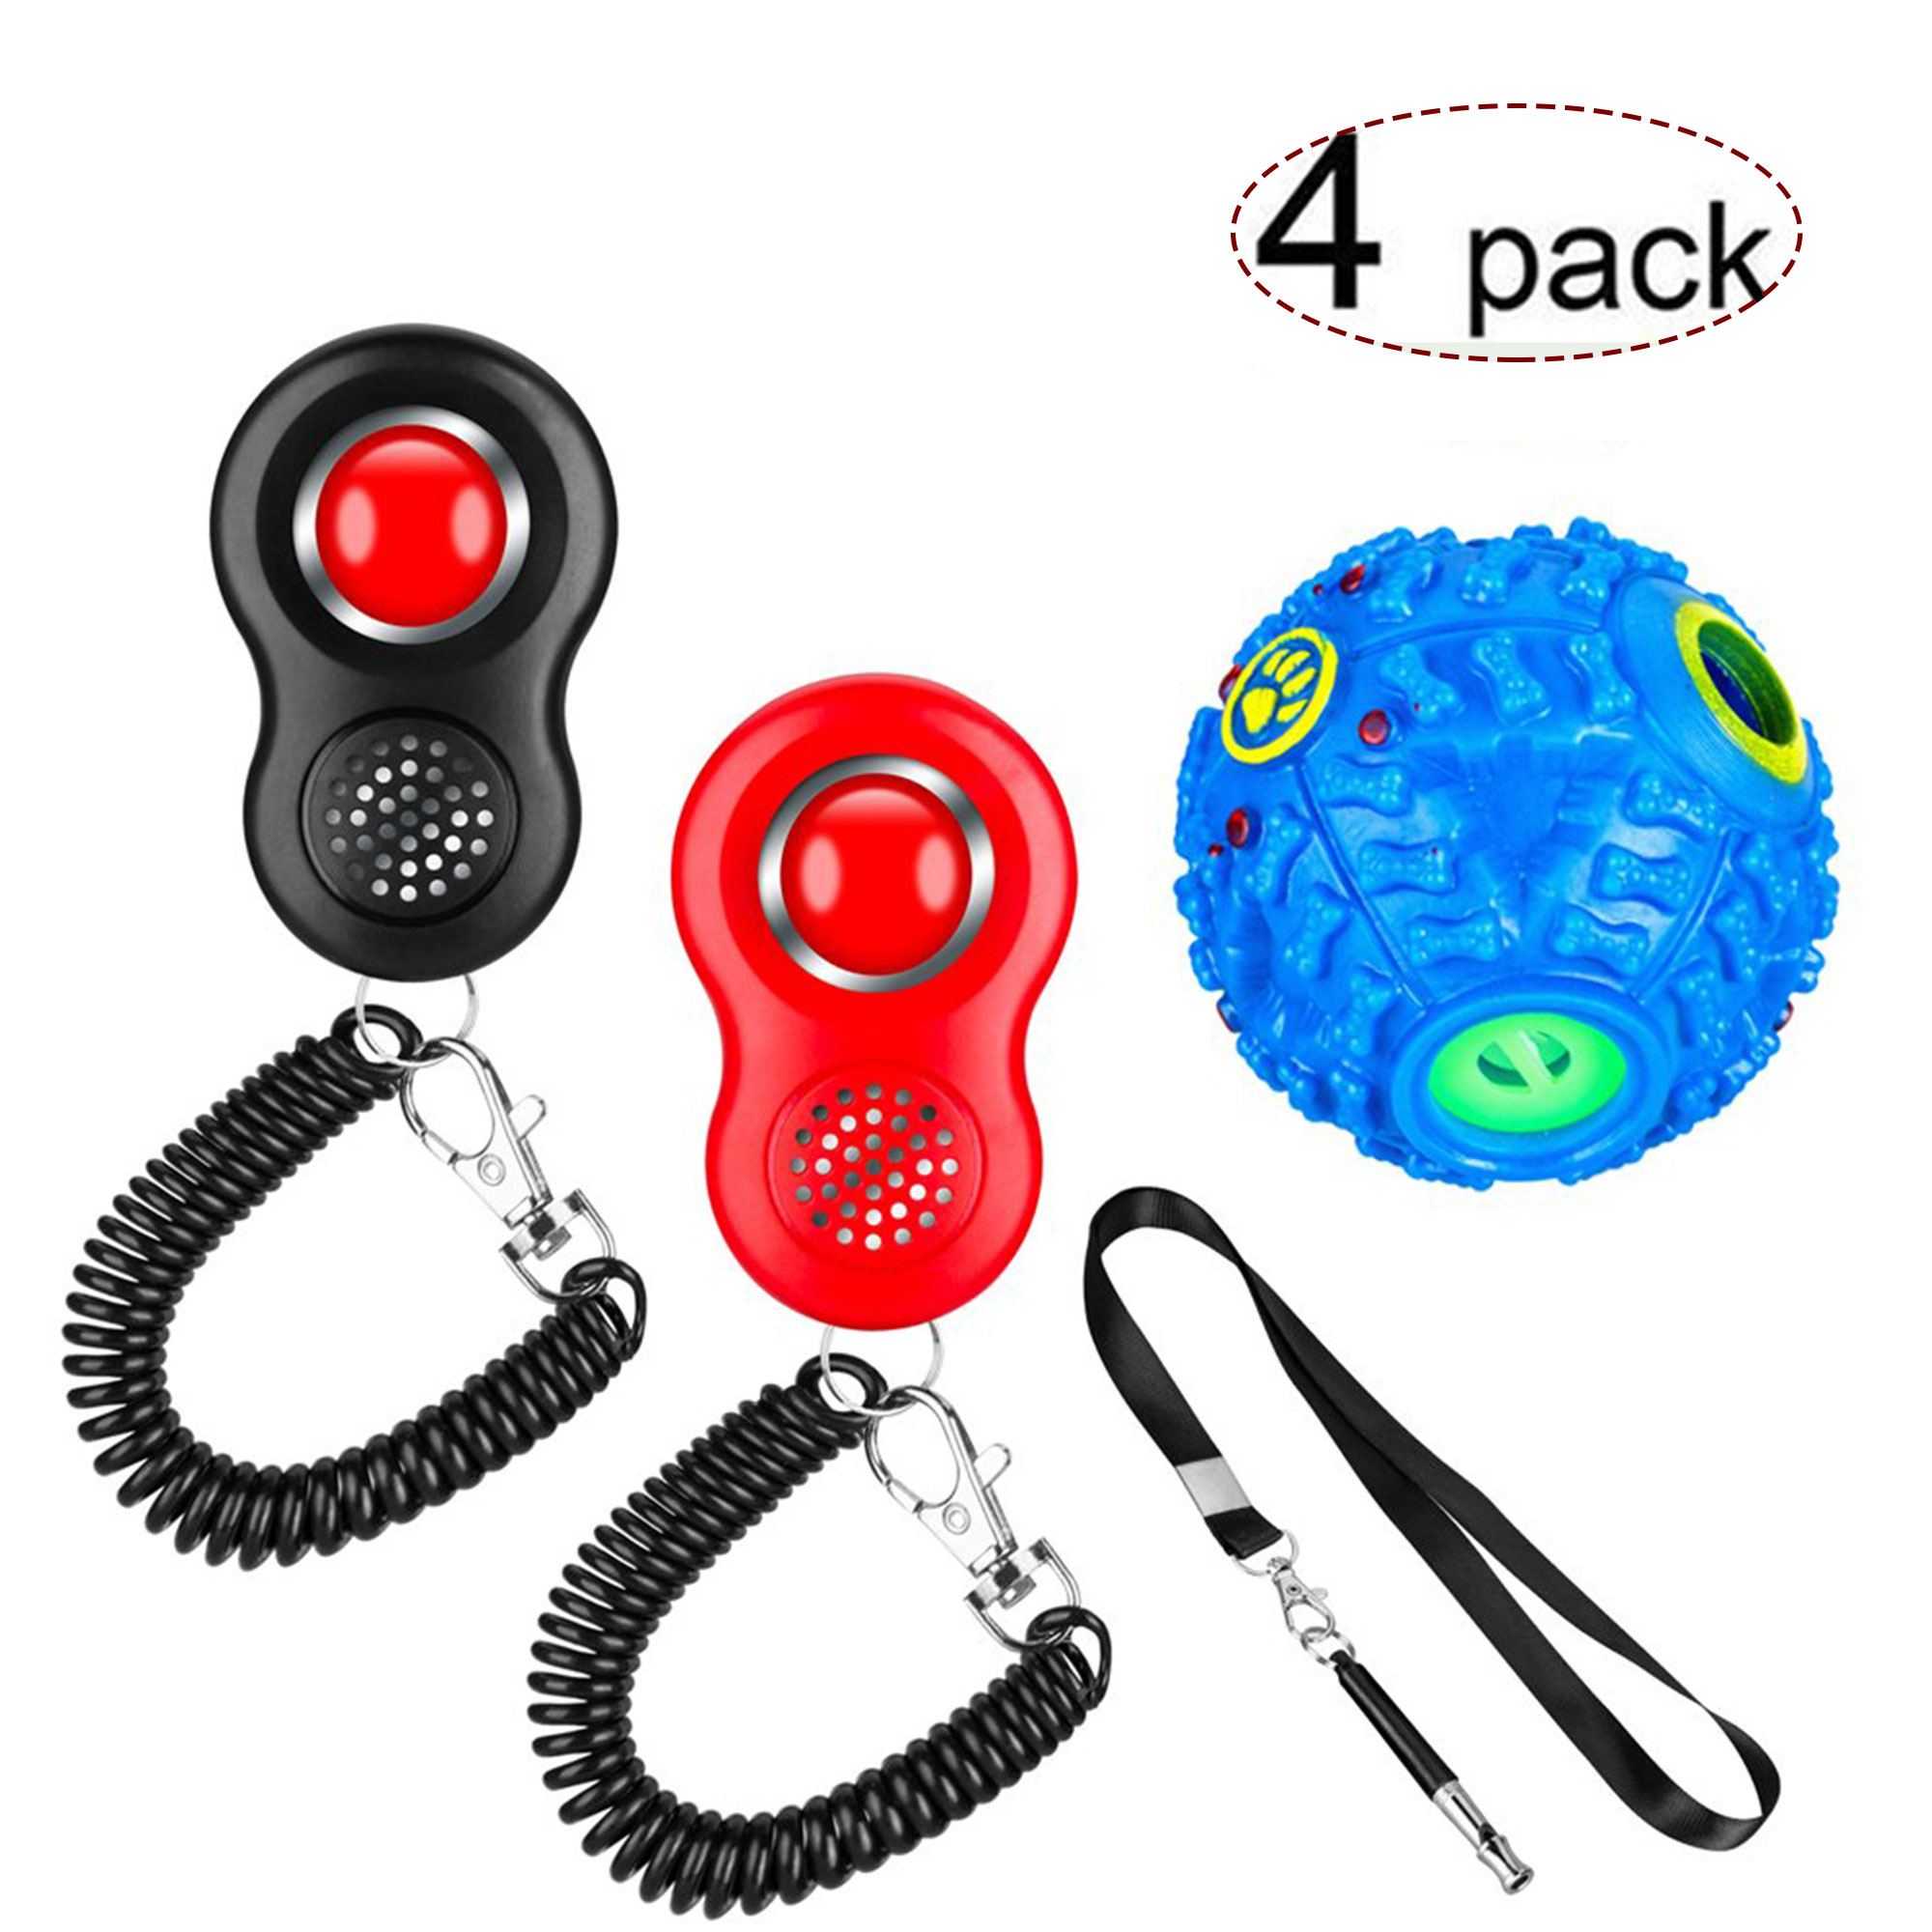 Dog Clicker for Training Dogs, Dog Training Clicker with Wrist Strap and Whistle, Pet Clicker Training Set for Small Large Dogs, Including Dog Whistle and Food Dispenser Set